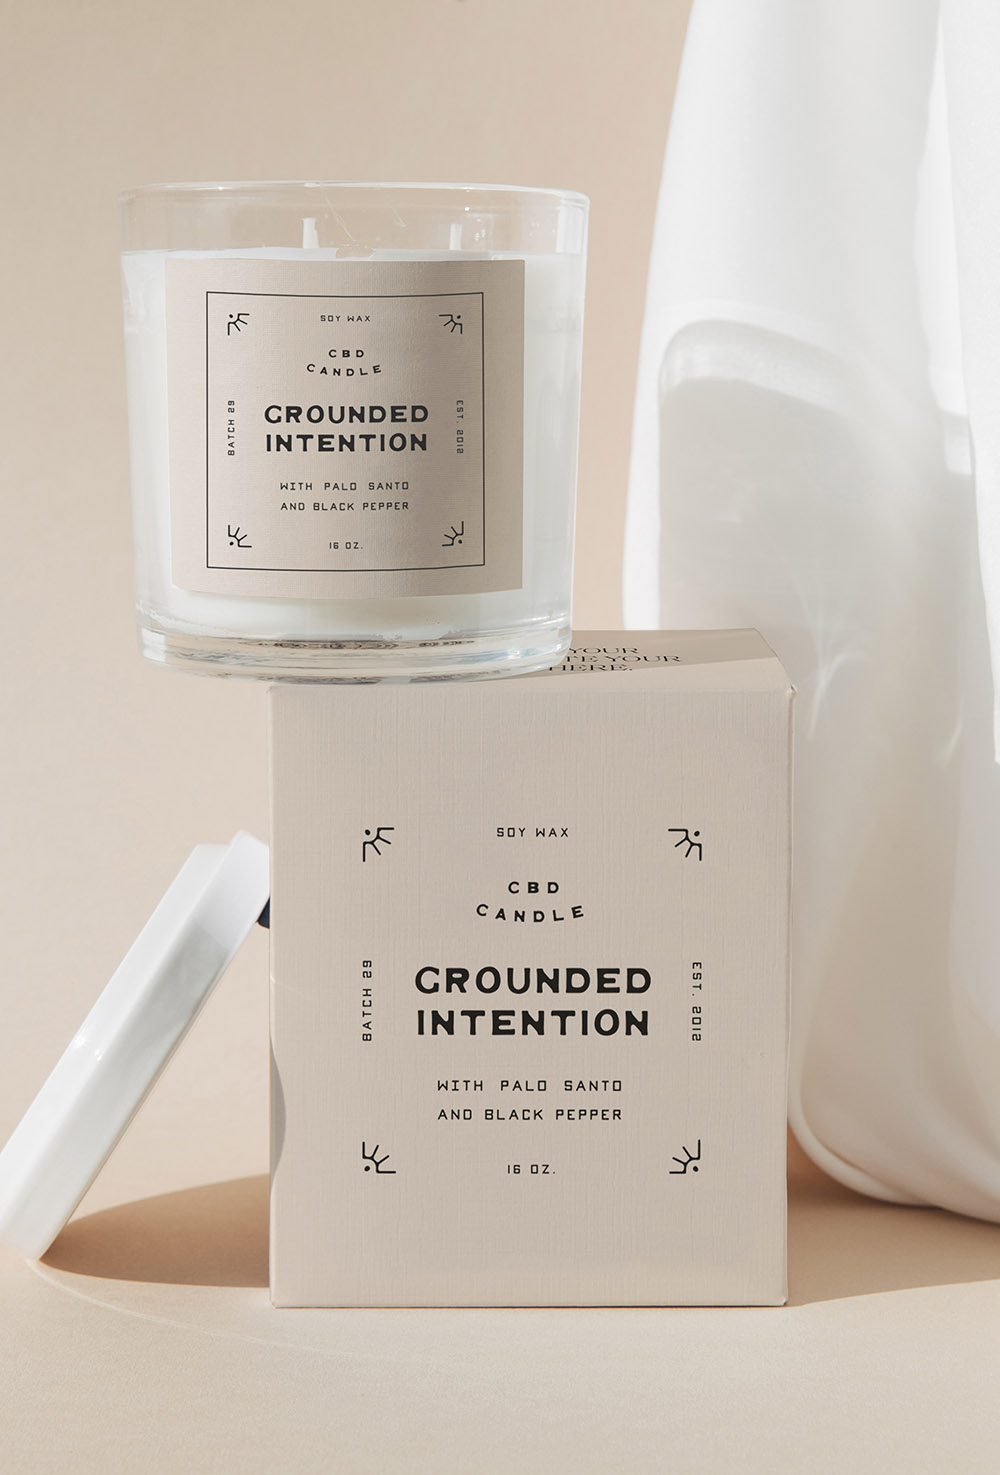 Product photography of a CBD candle